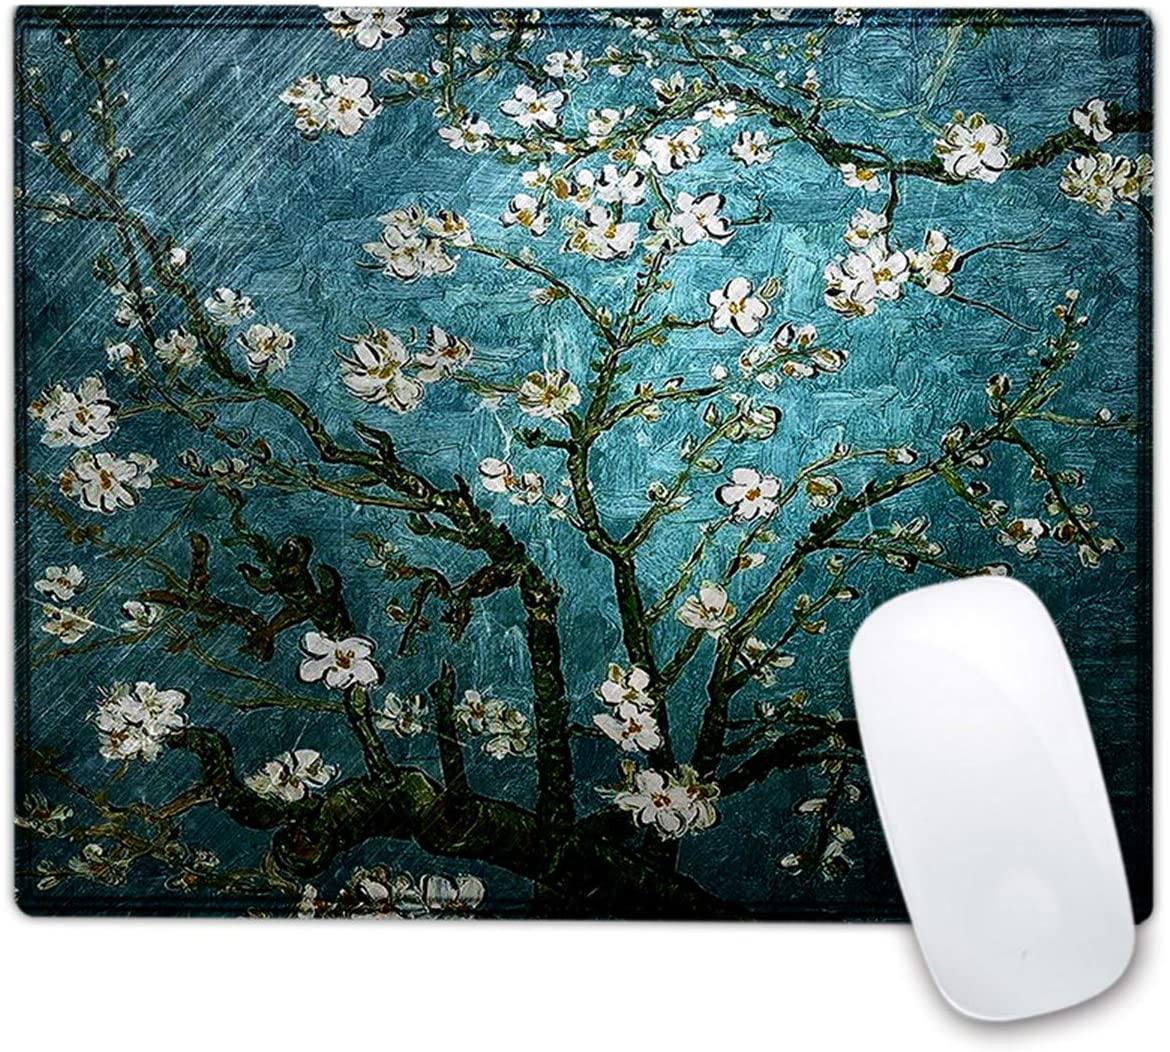 Baocool Mouse Pad with Stitched Edges,Personalized Printed Mouse Mat, Non-Slip Rubber Base Mousepad Office Accessories Desk Decor Mouse Pads for Computers Laptop.10.23 x 8.26 inch (Van Gogh Painting)